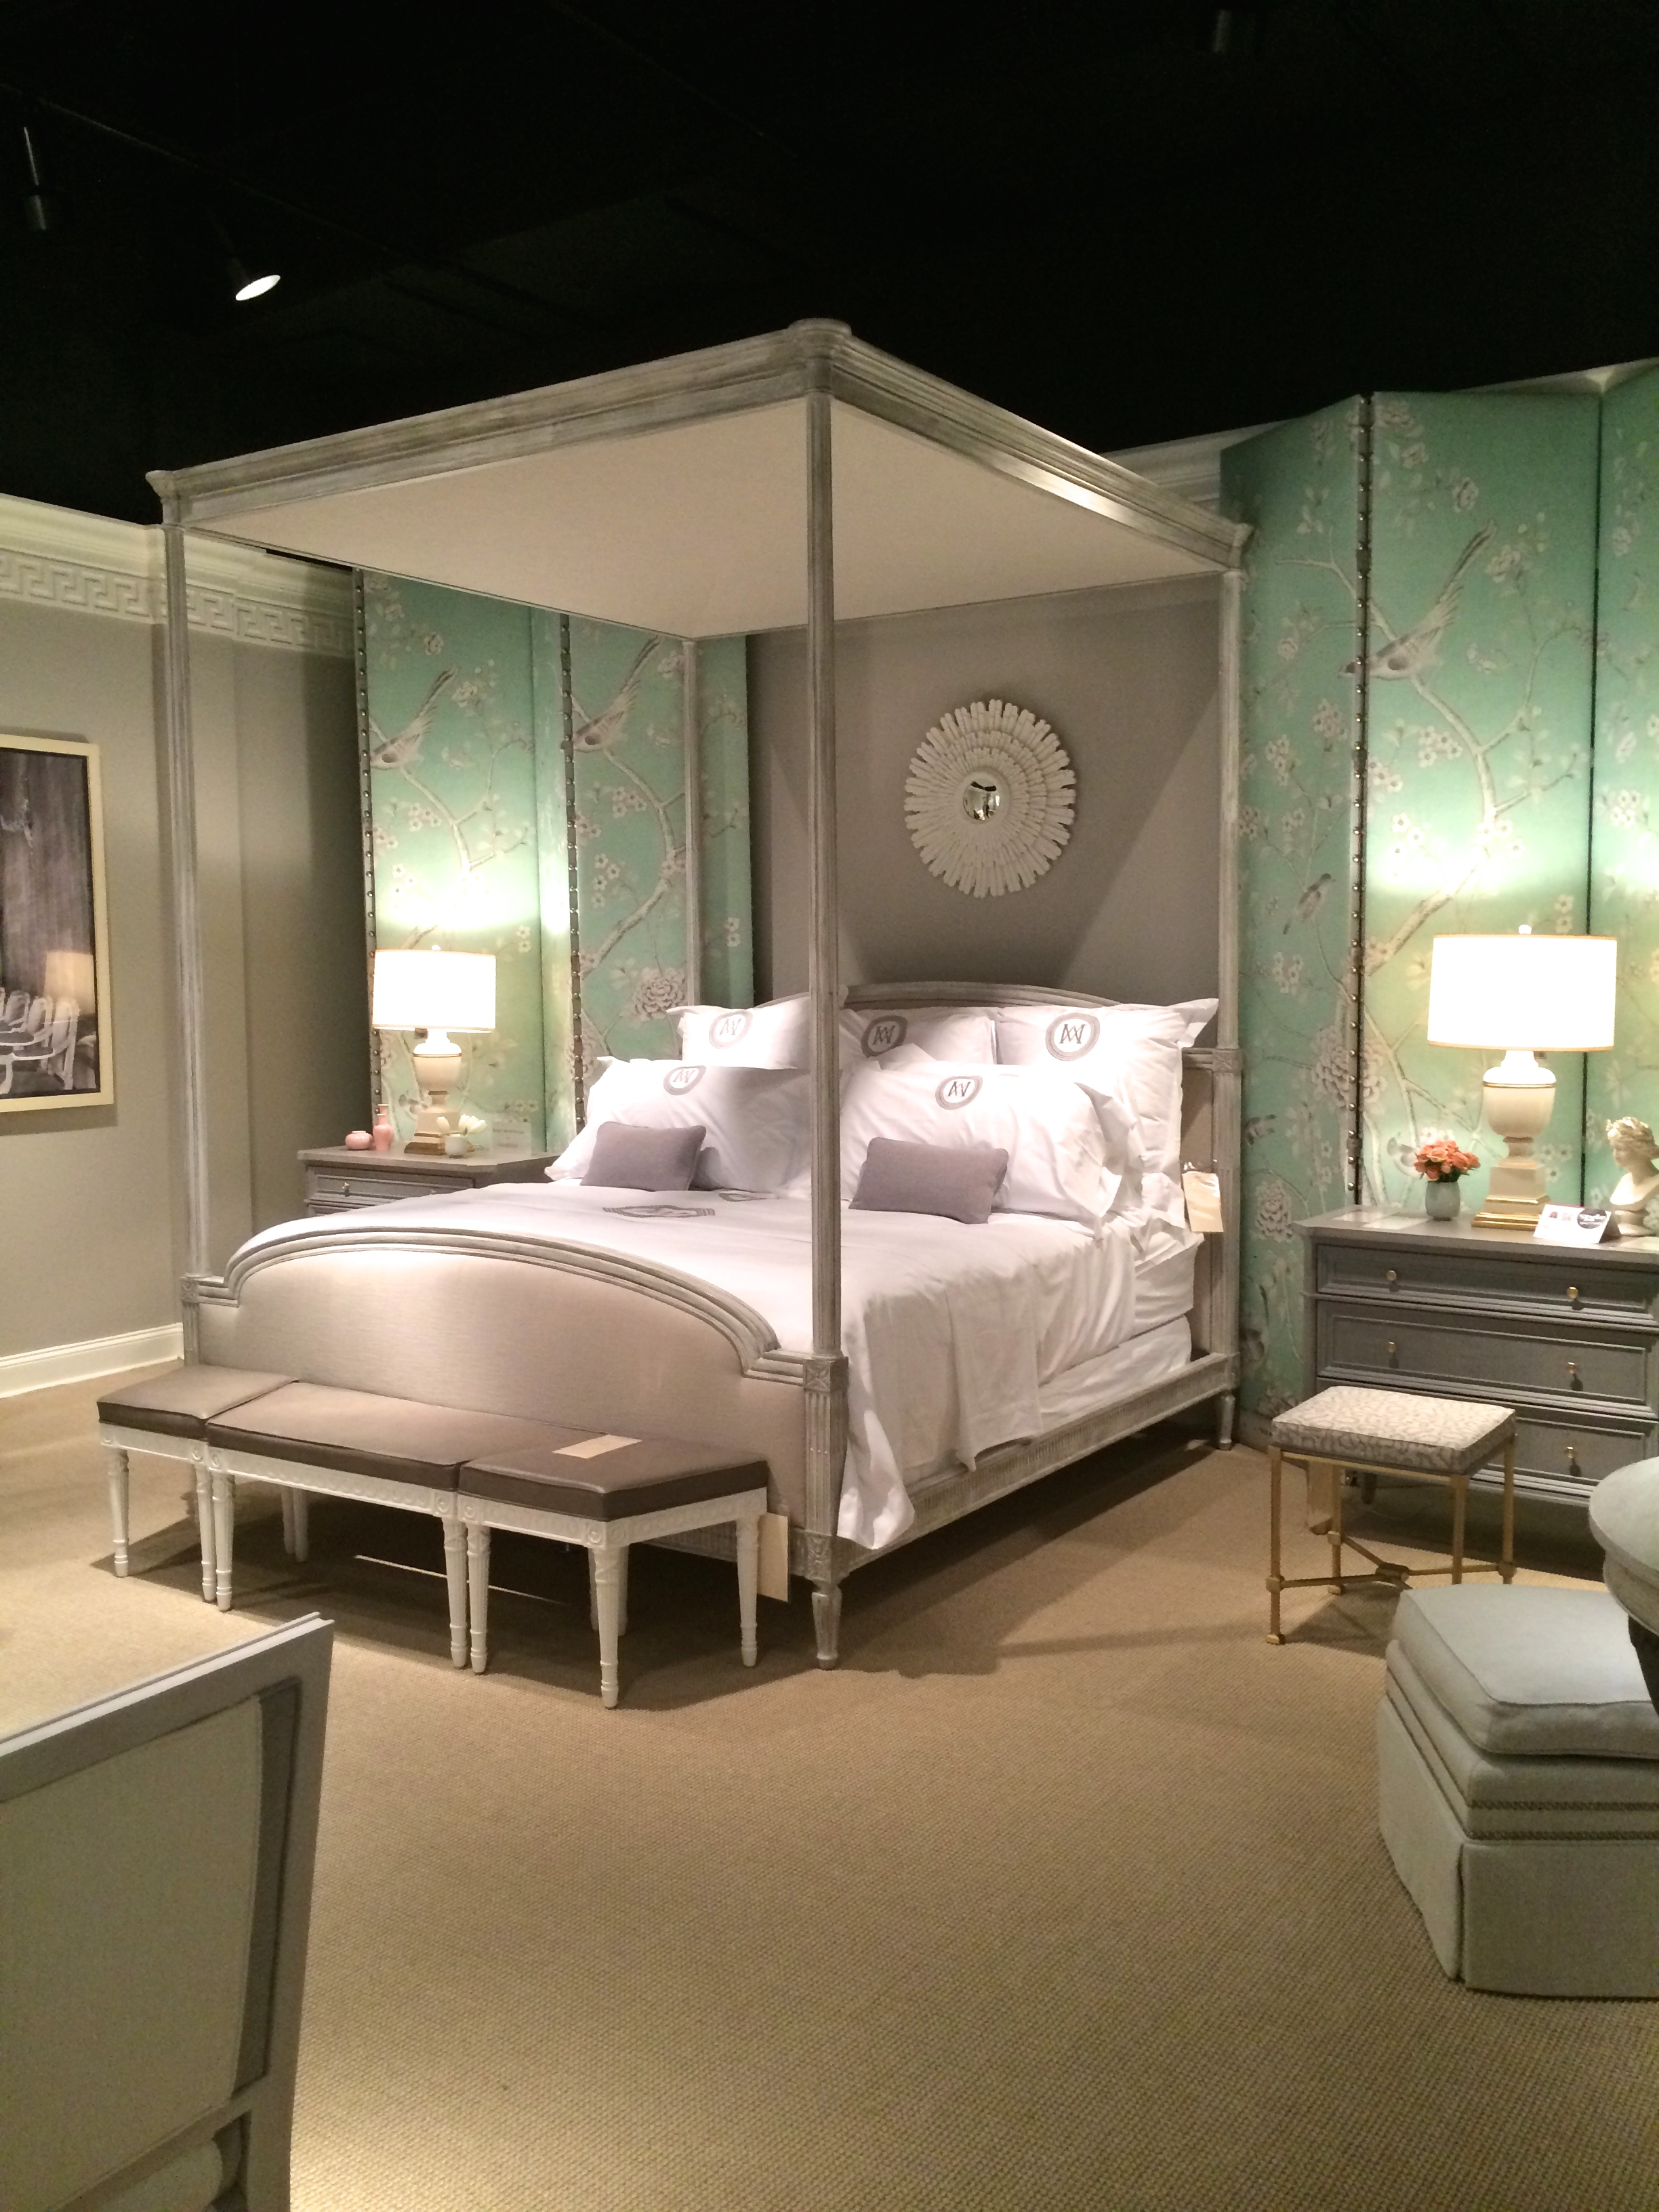 this bedroom by Mary McDonald contains a lot of Louis XVI-style elements